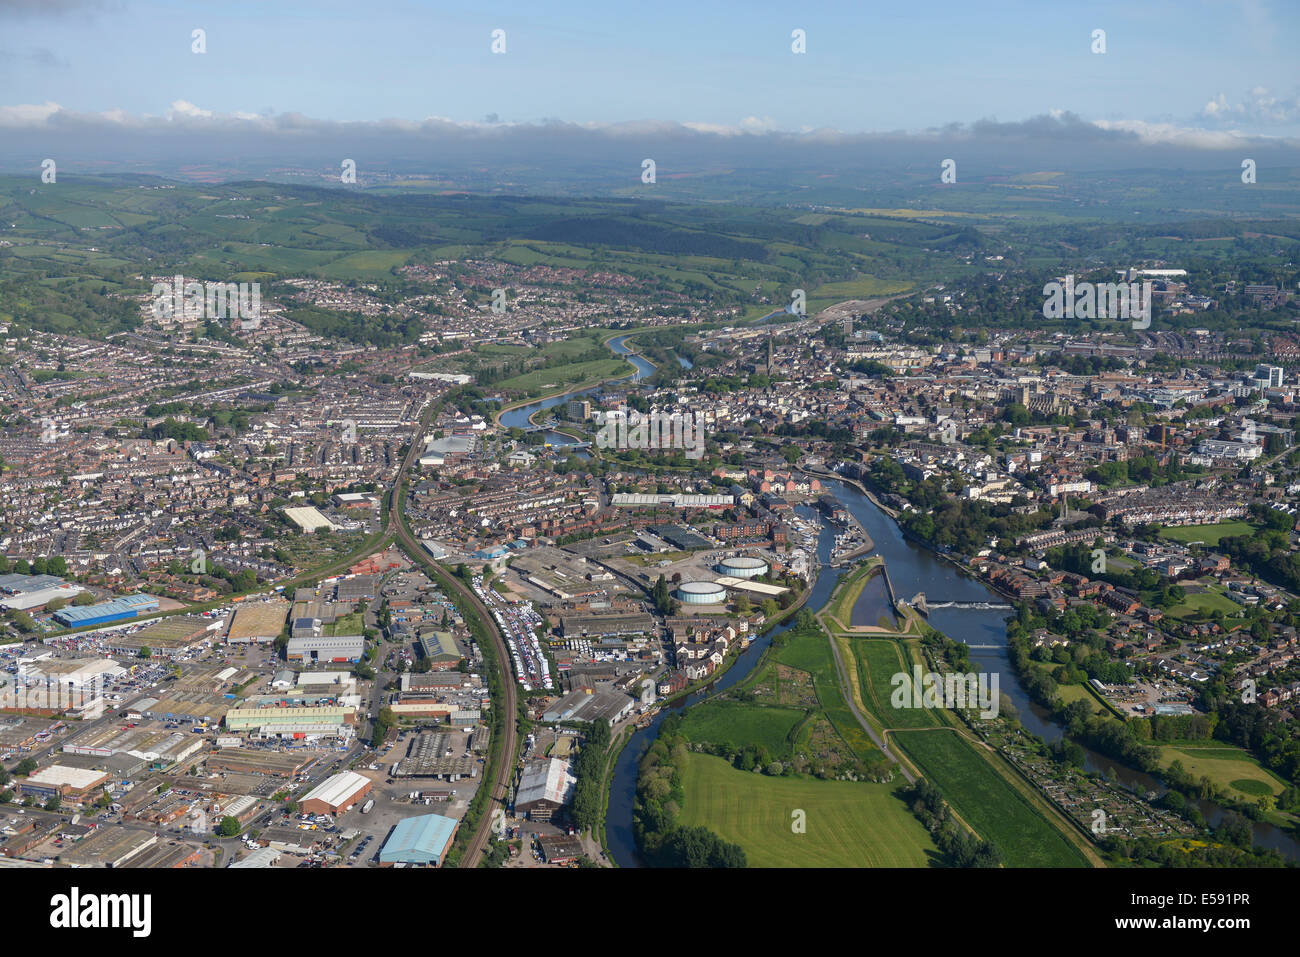 An aerial view looking north along the River Exe towards Exeter City Centre in Devon, UK - Stock Image